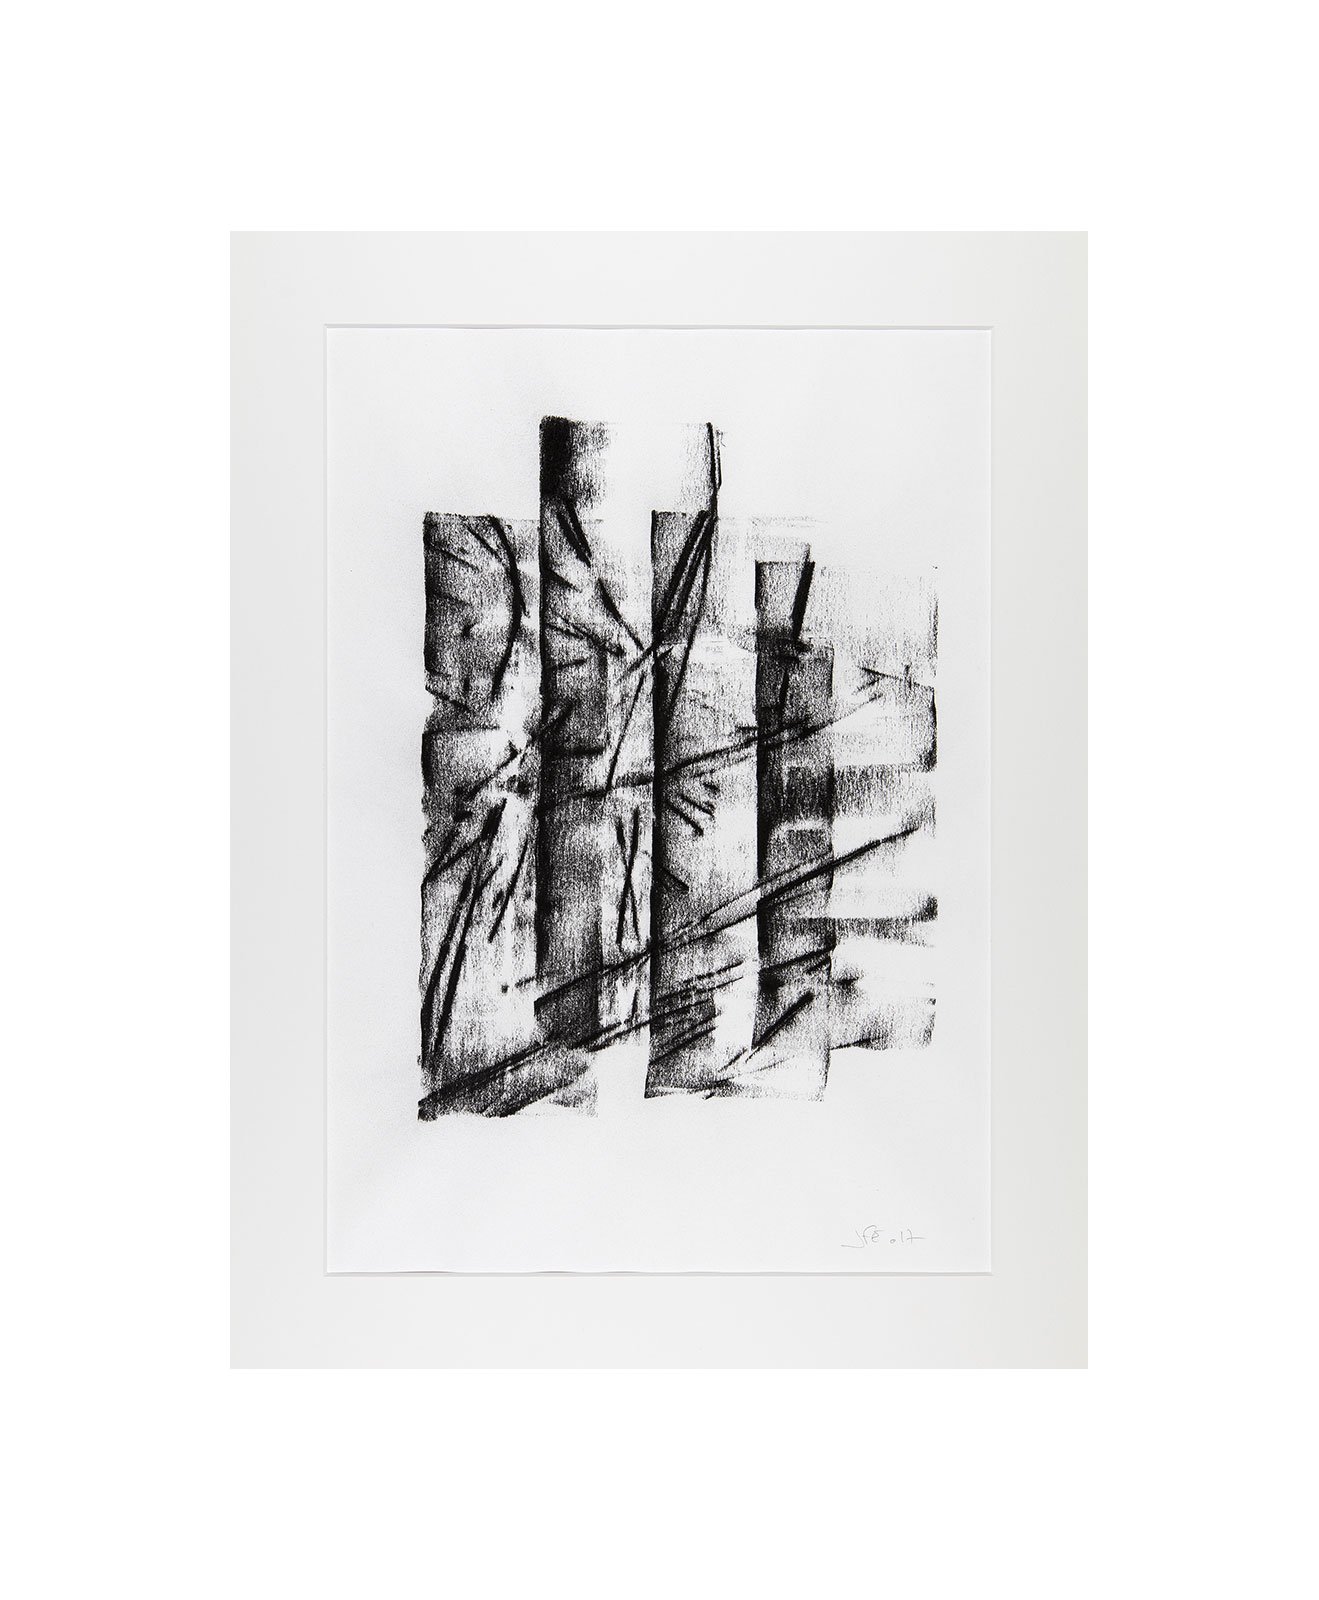 Cha 1.19, Charcoal on paper, black and white artwork, drawing, jf escande, contemporary art